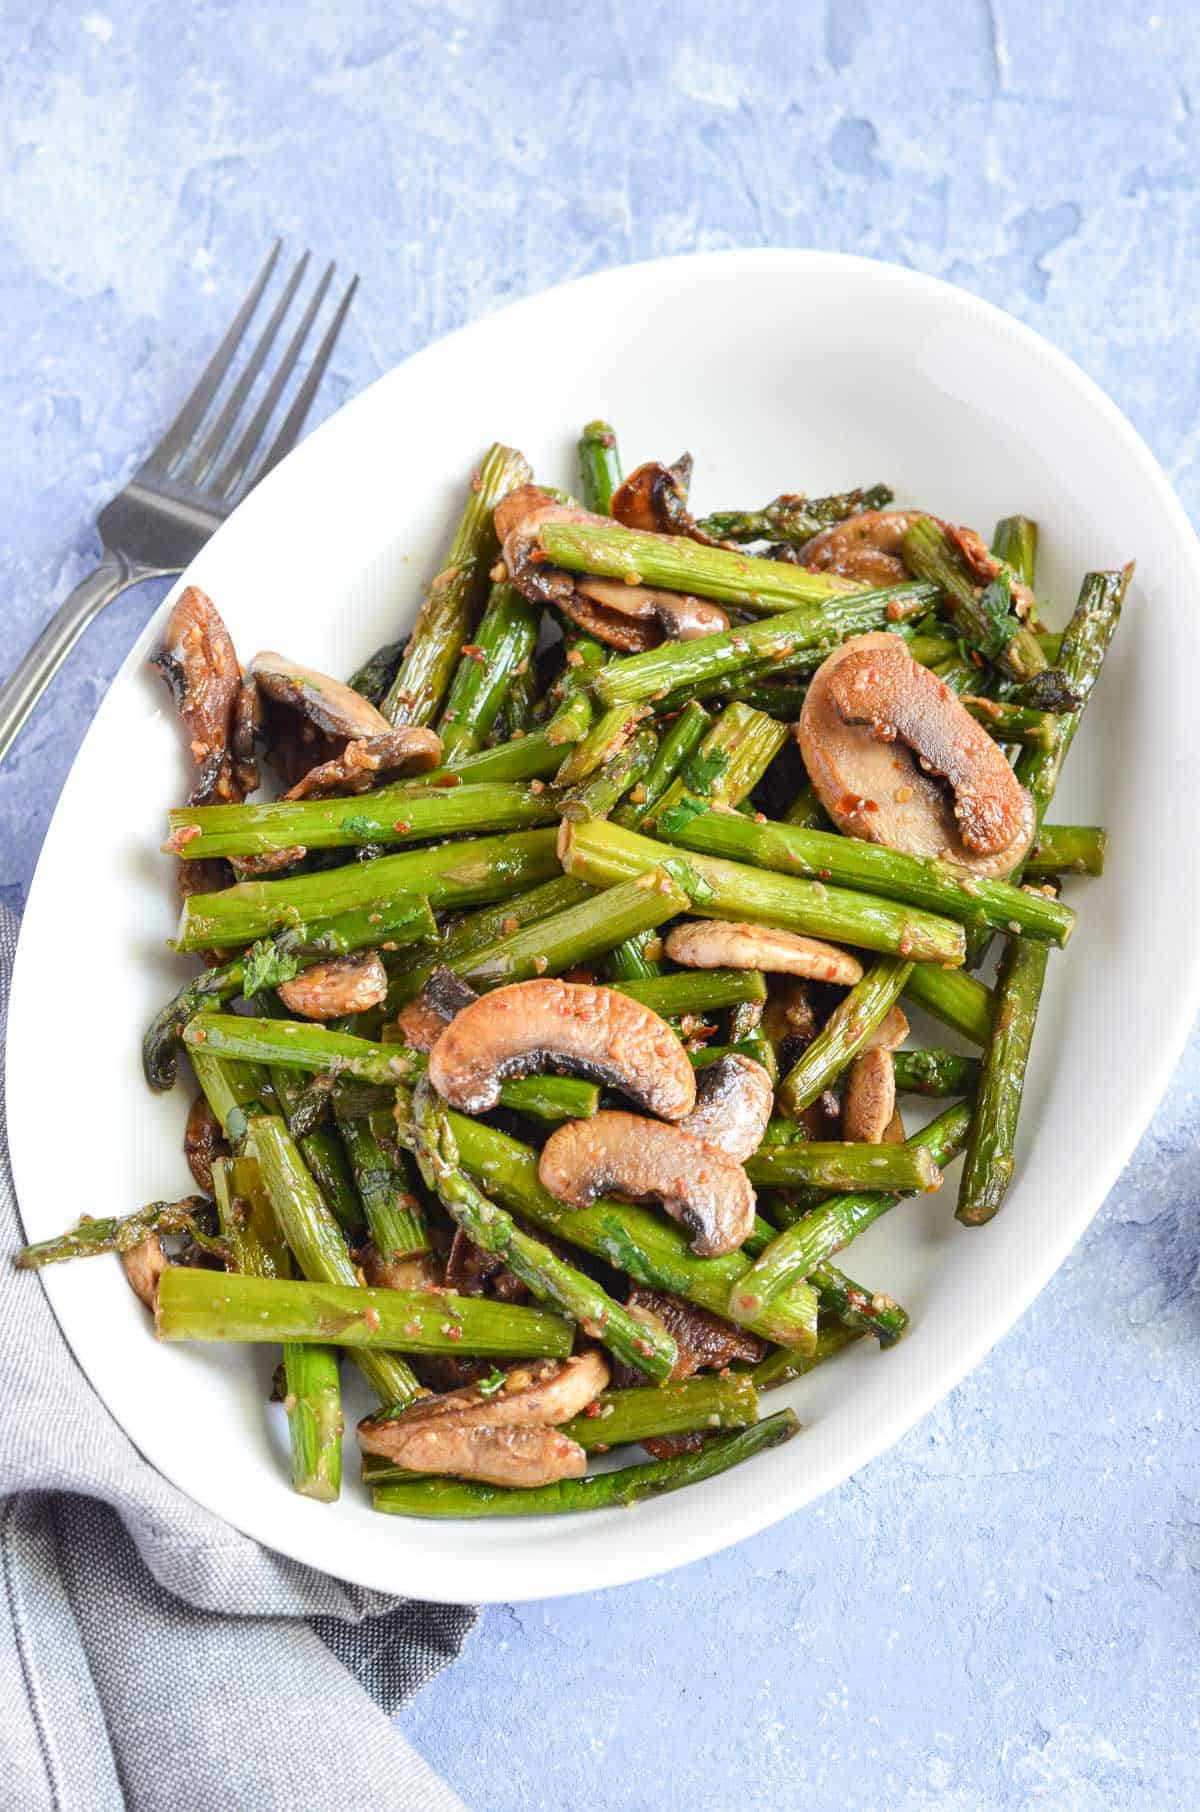 mushrooms & asparagus served in white oval bowl along with fork.